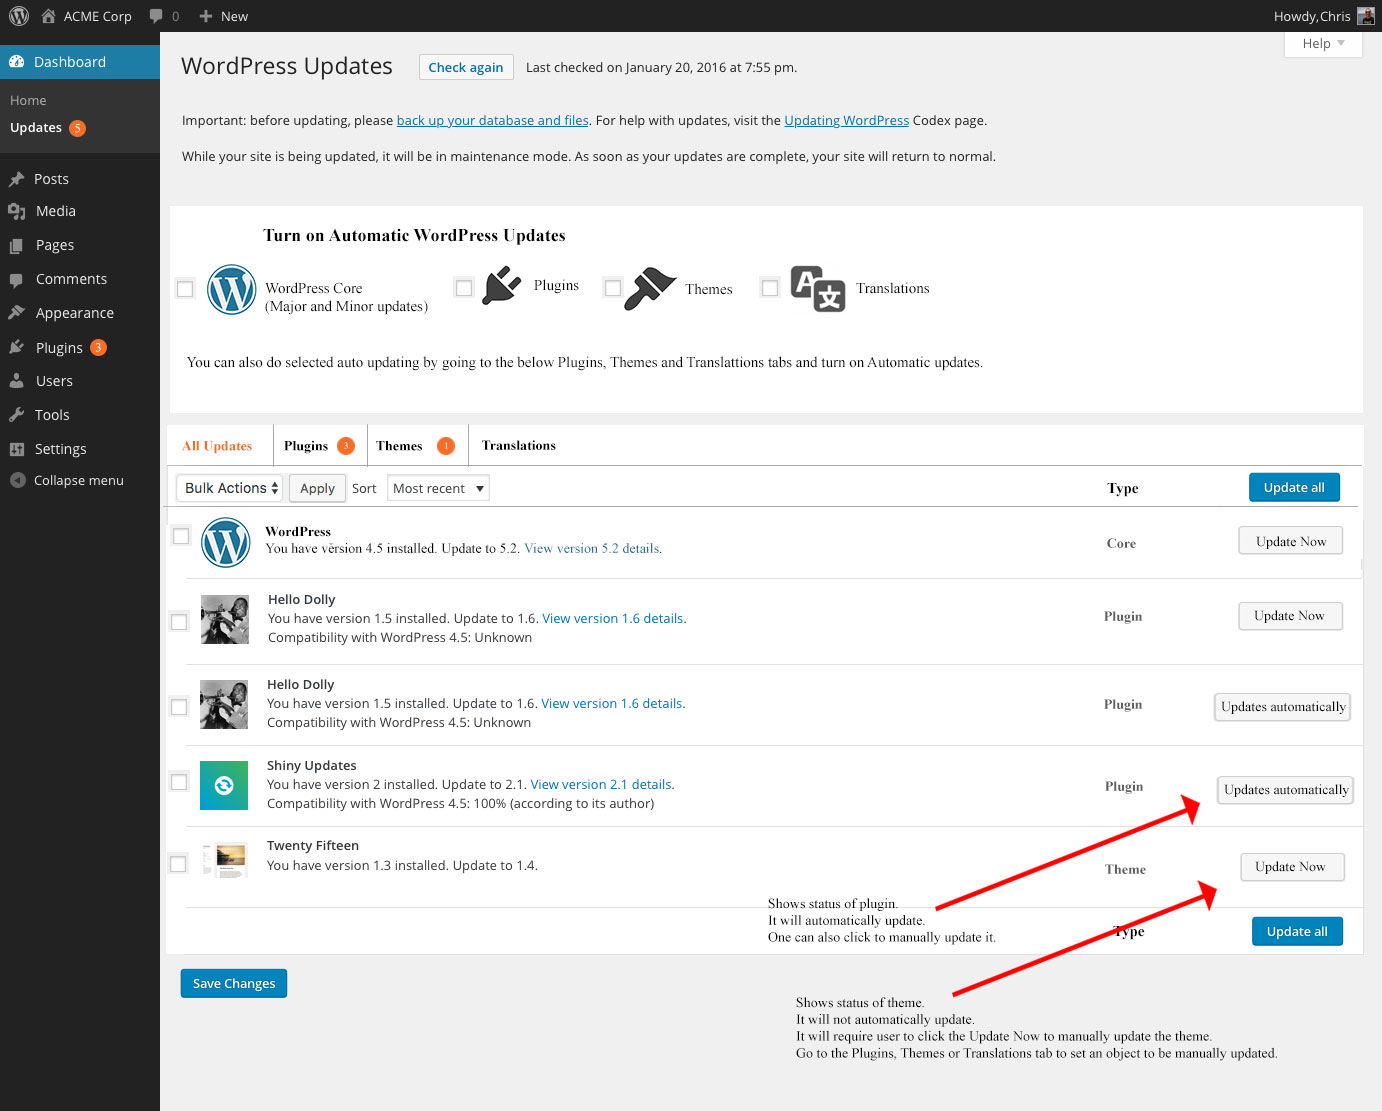 WordPress-Updates-main-screen